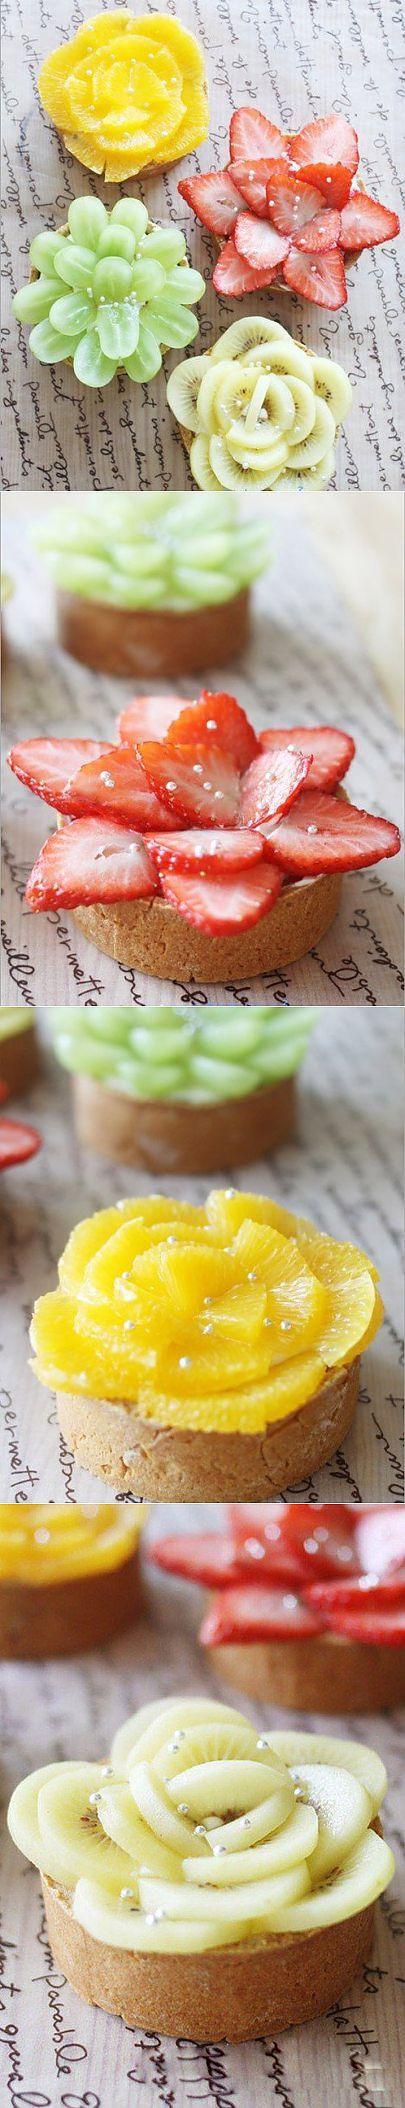 Fruit flower cakes